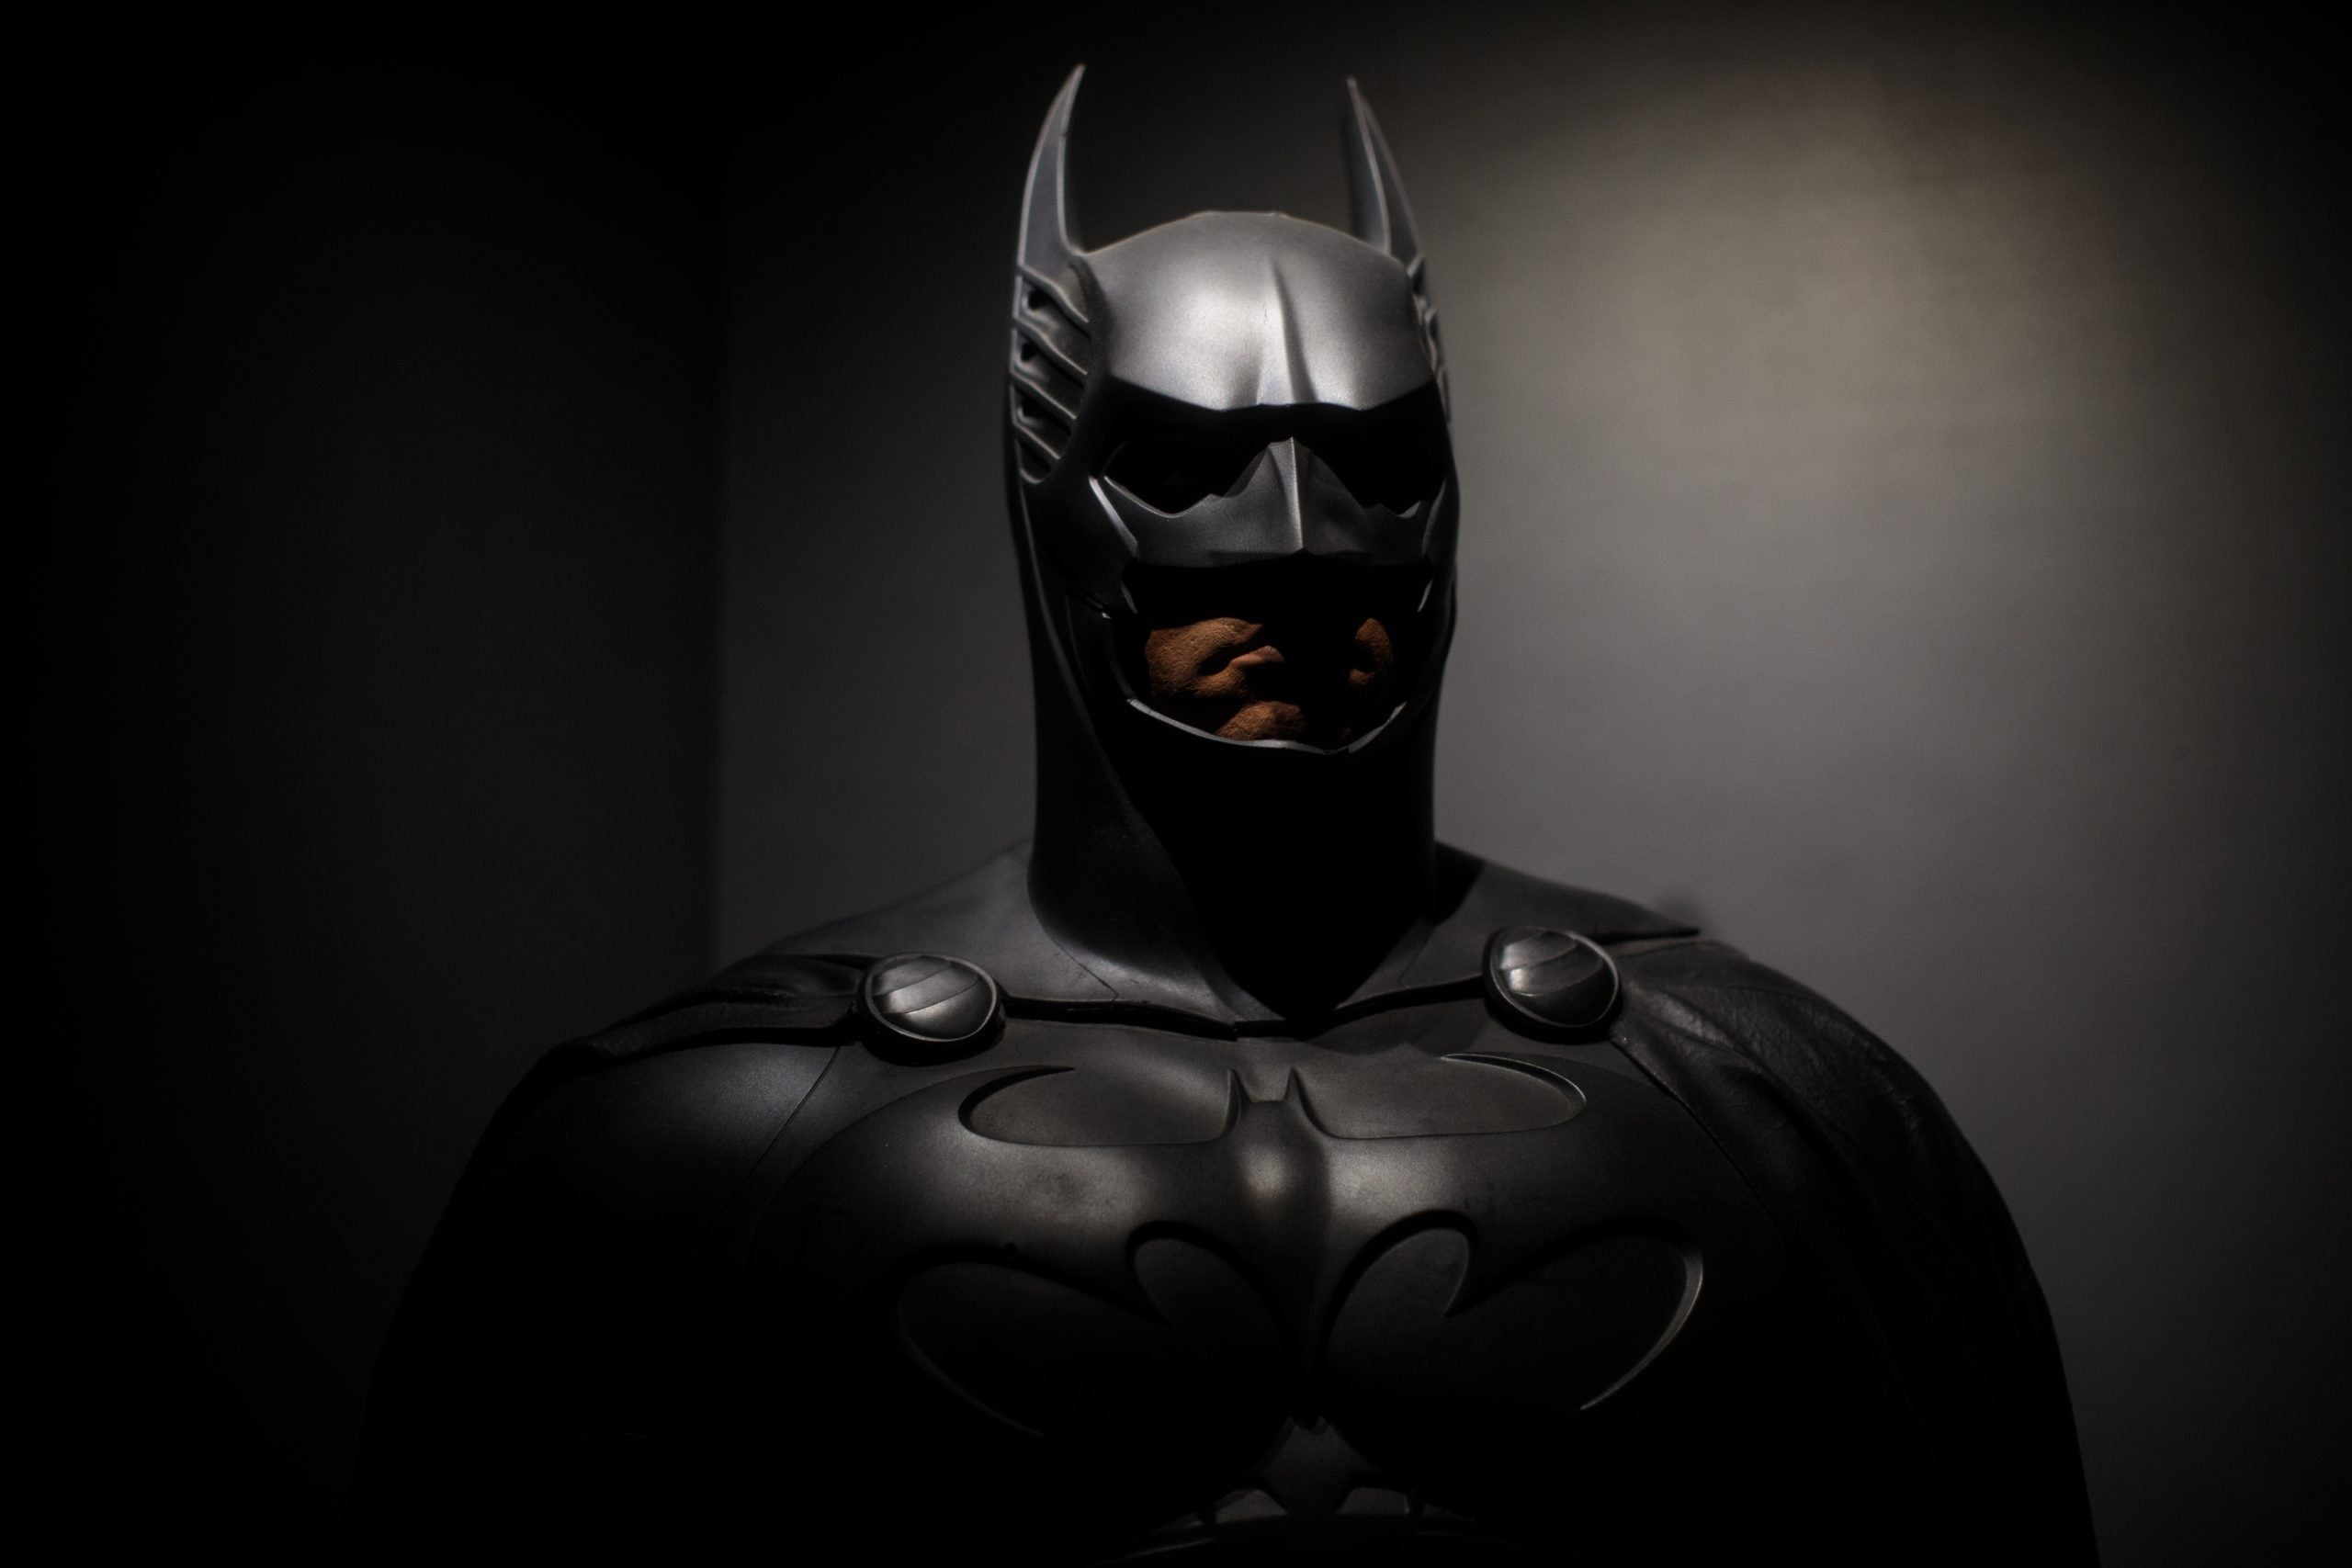 The Batman complex: why billionaires need to stop seeing themselves as superheroes